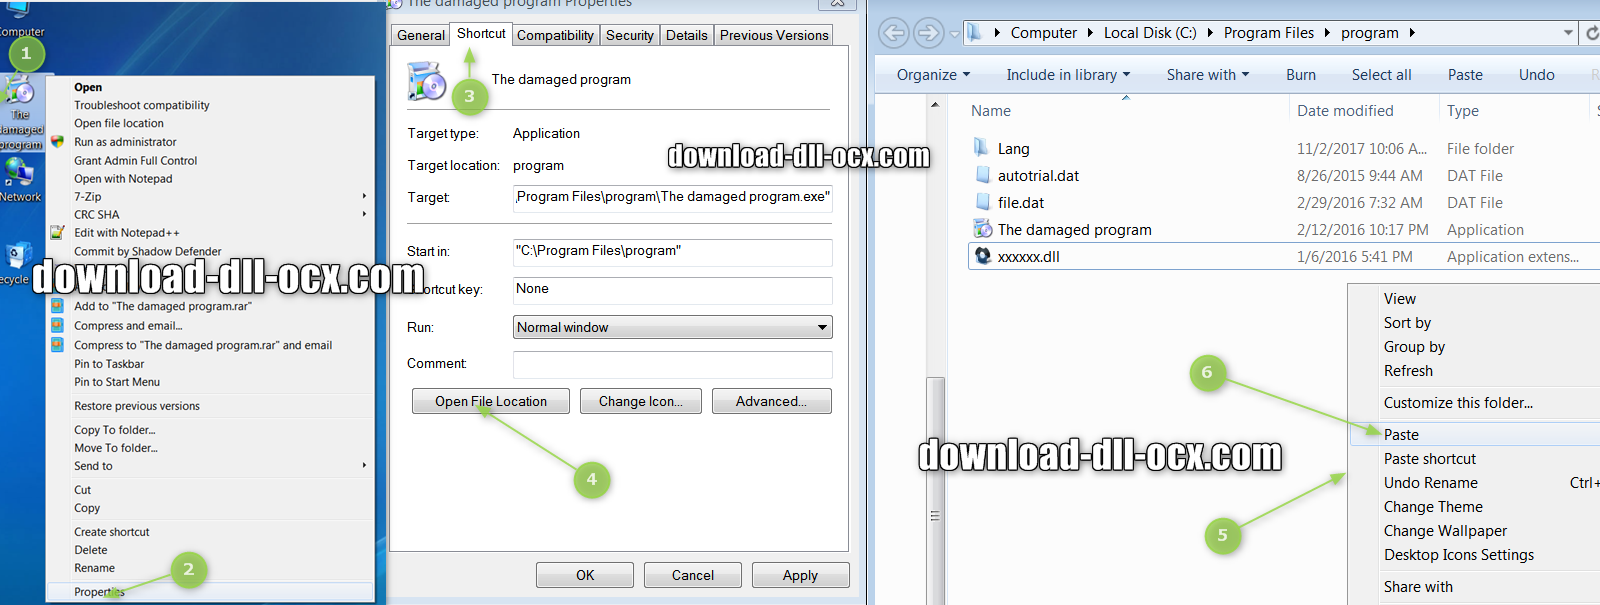 how to install CCPASSWD.dll file? for fix missing